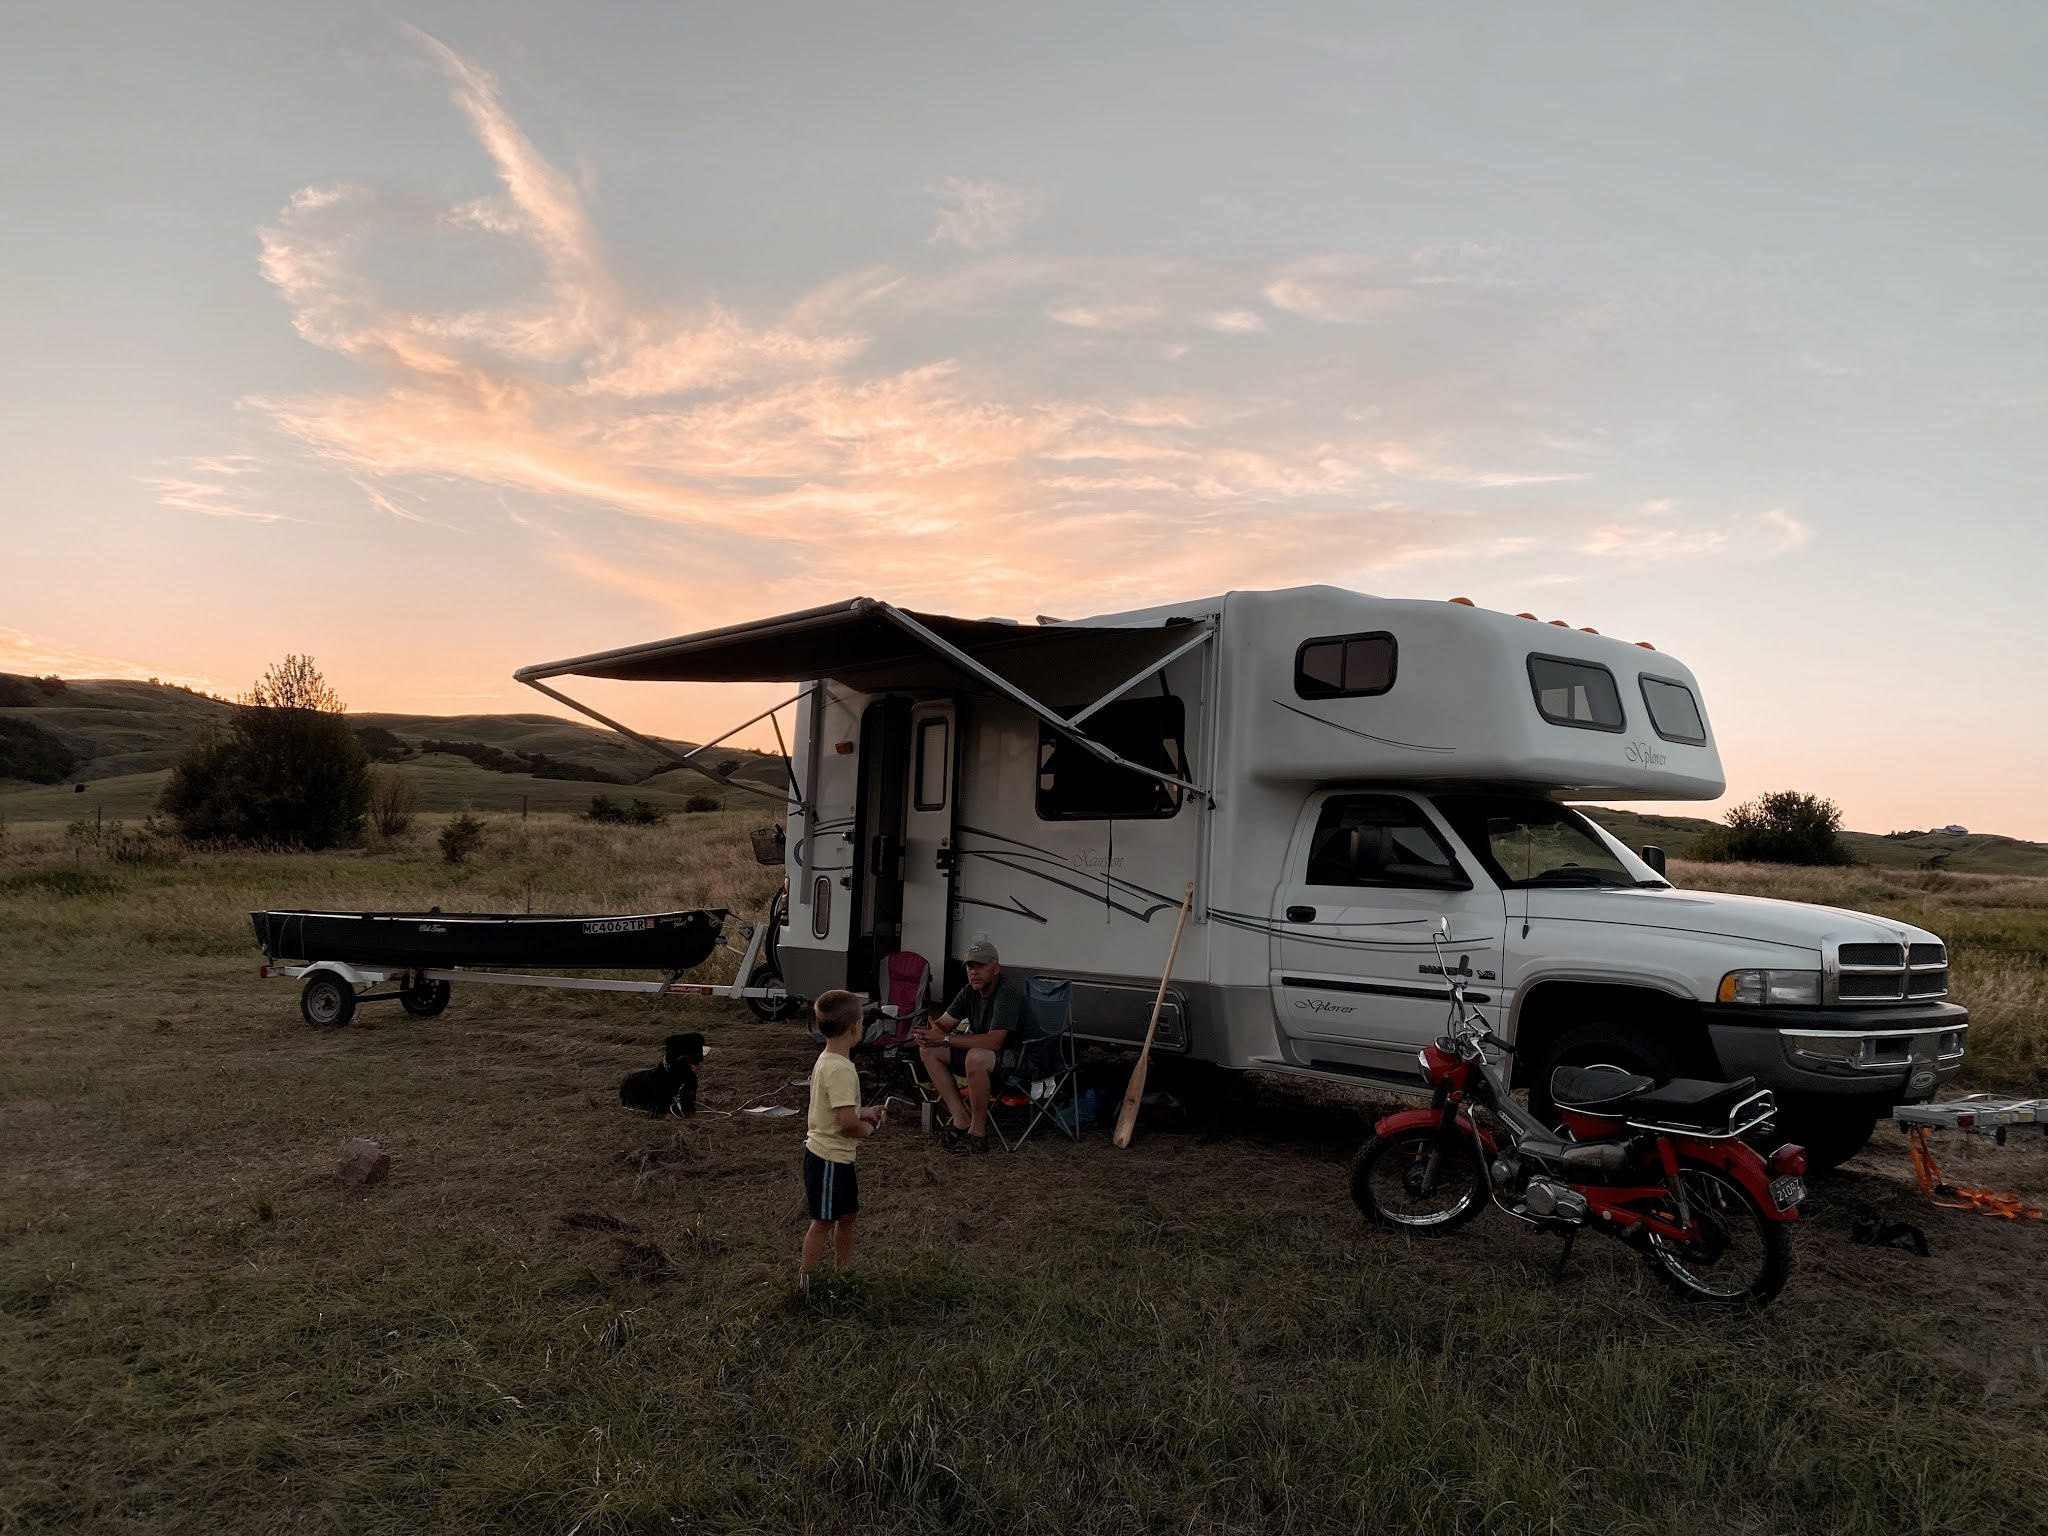 Dispersed Camping in South Dakota | biblio-style.com